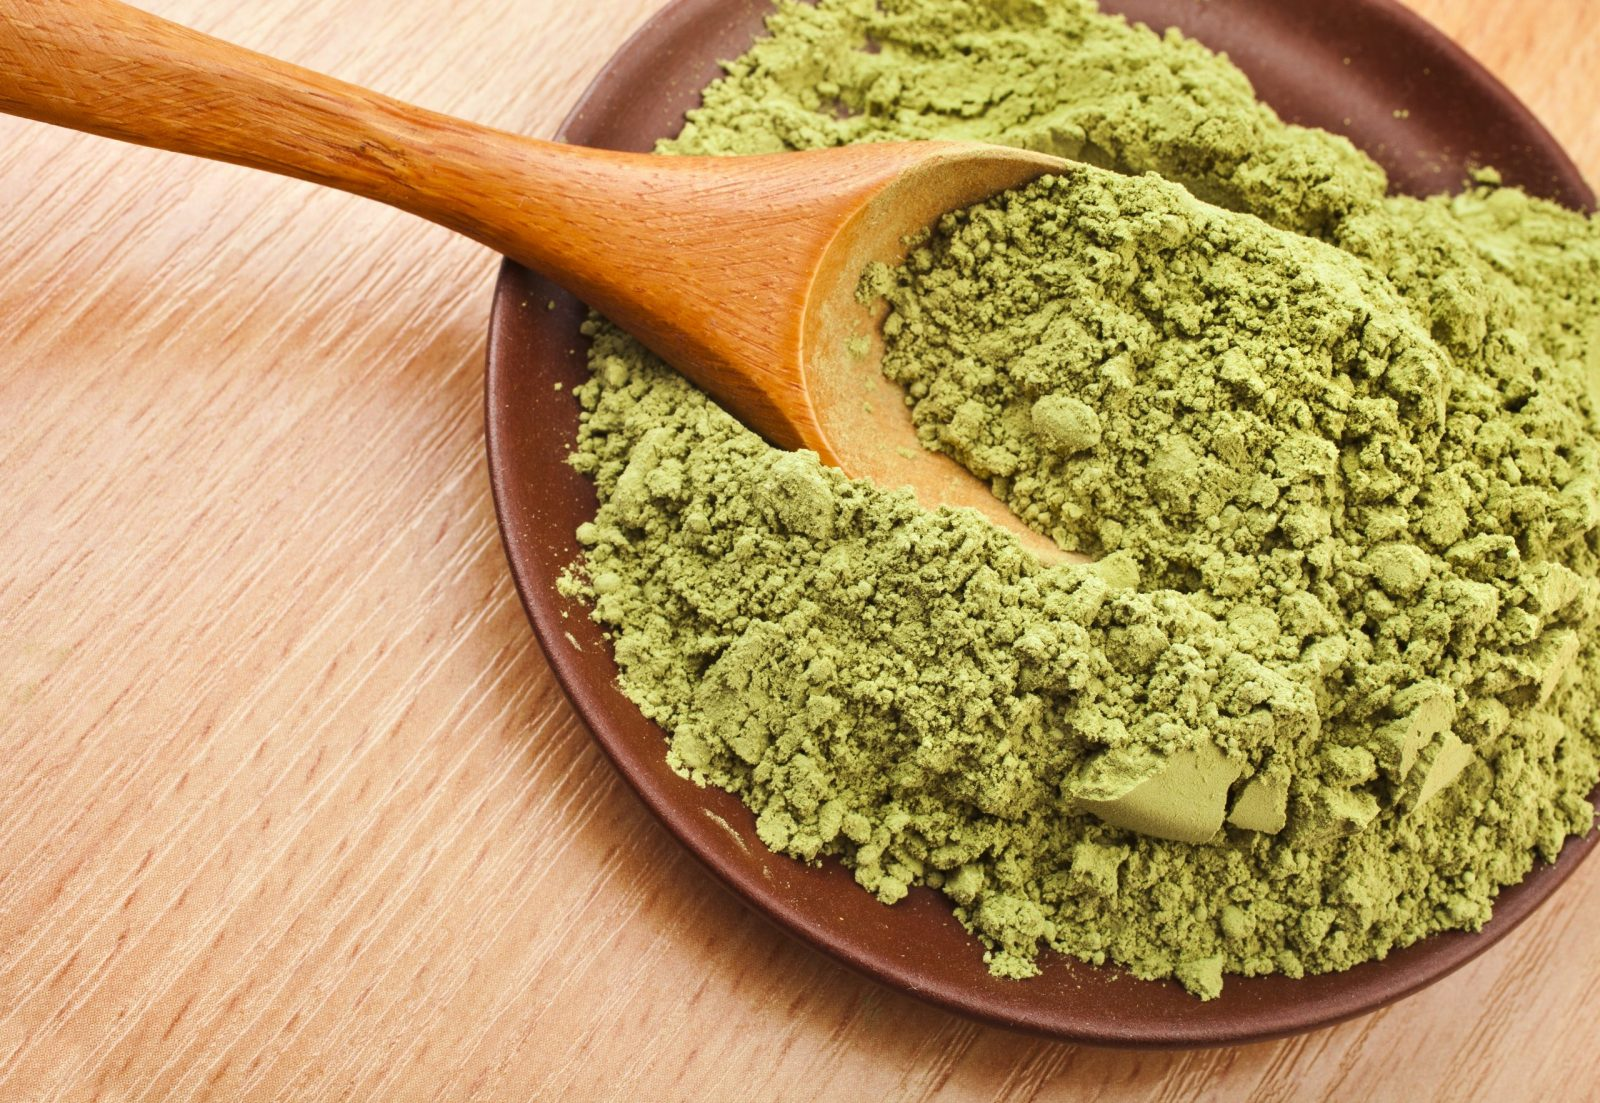 Super Kratom Powder